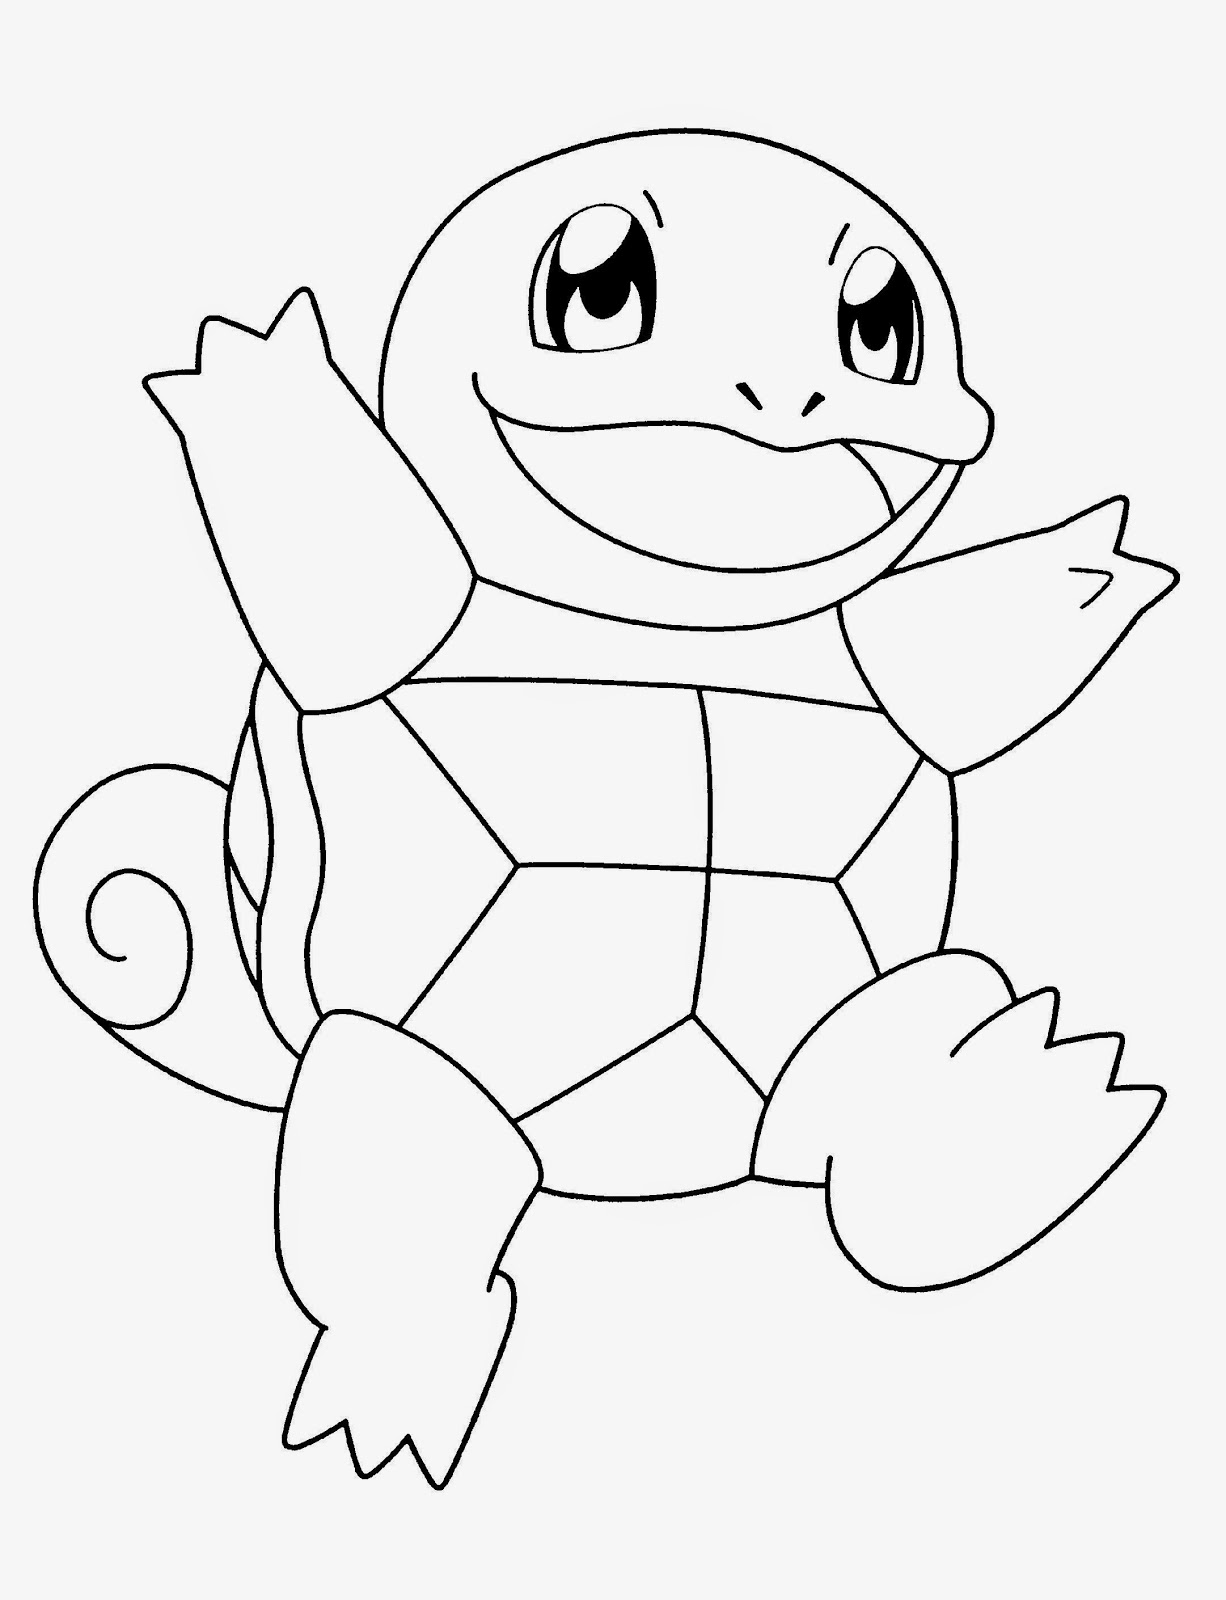 Pokemon coloring pages free coloring sheet for New coloring pages